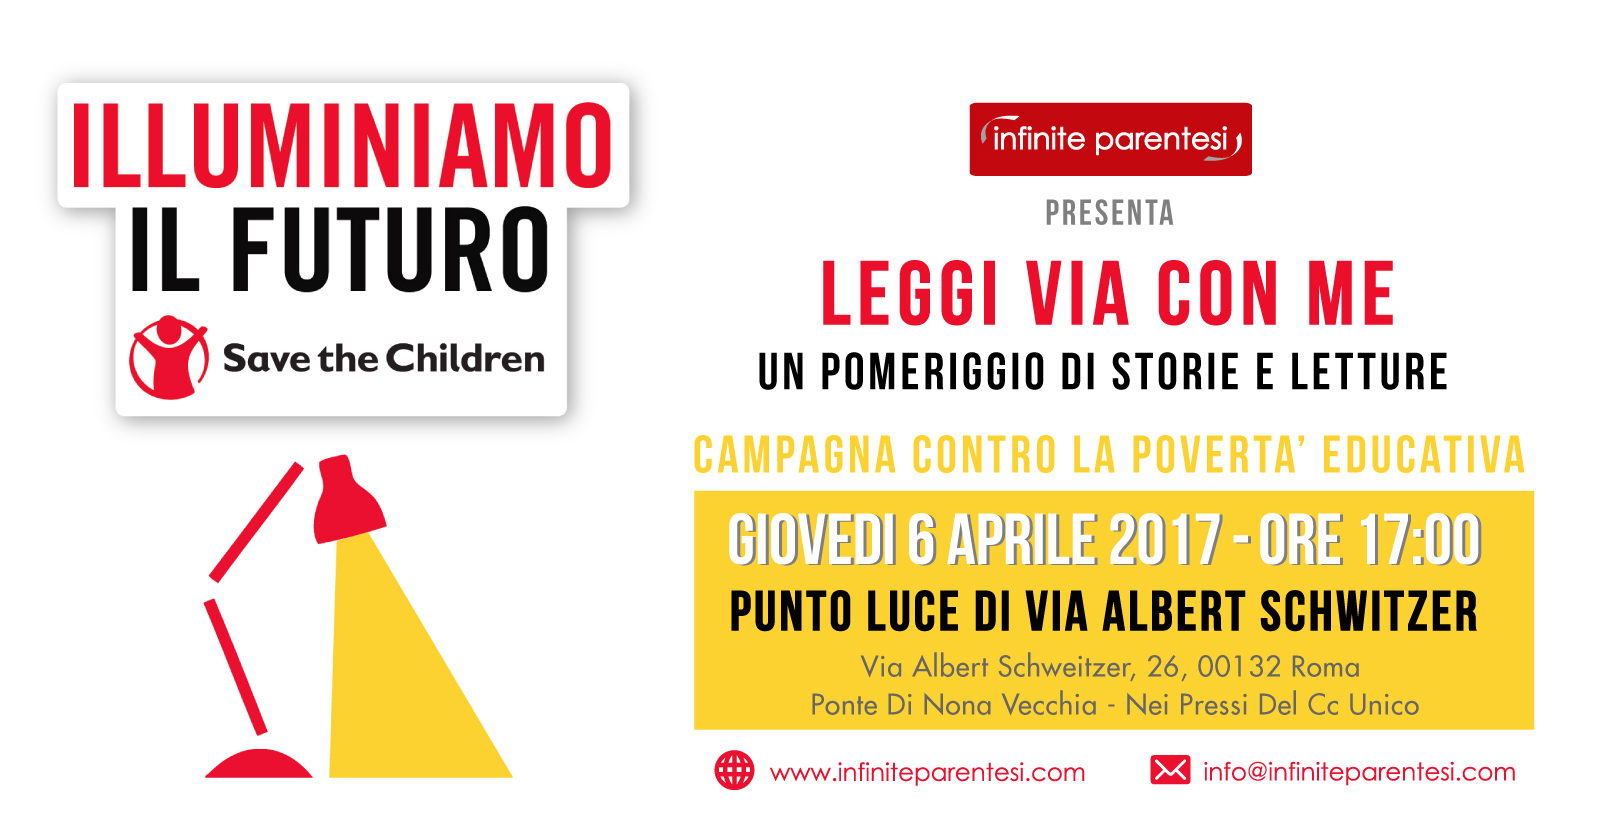 save the children - illuminiamo il futuro 2017